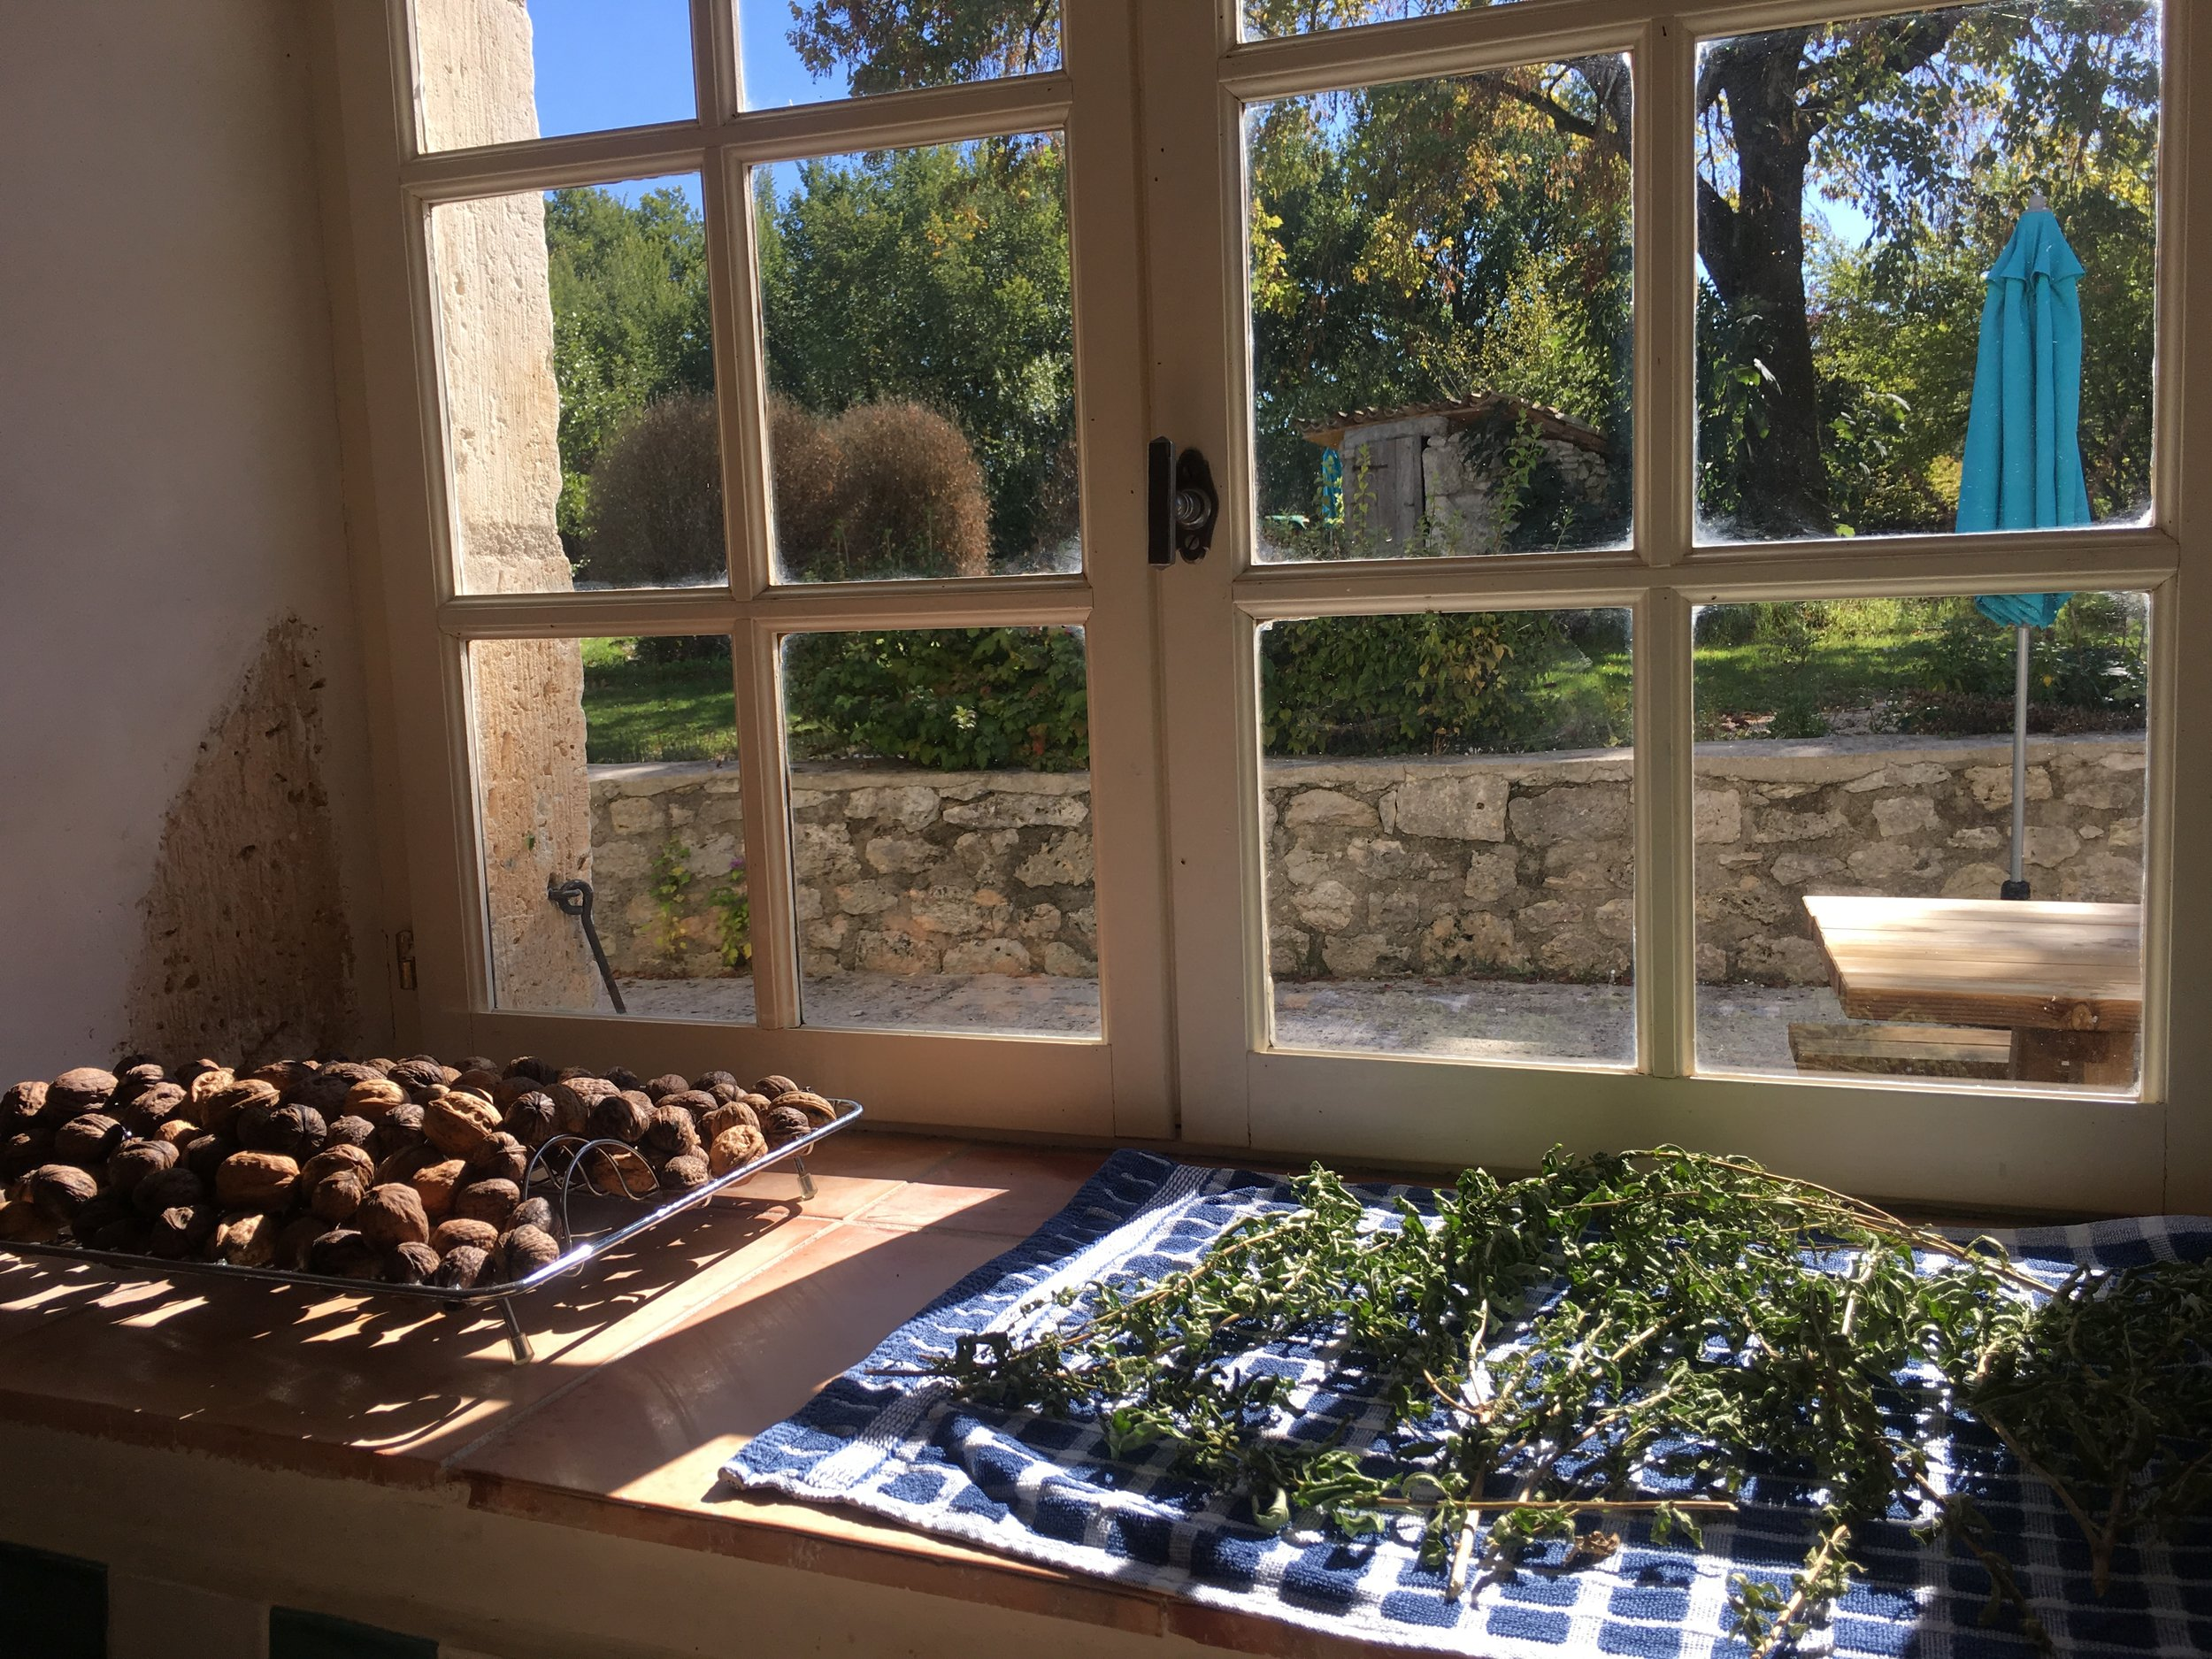 Drying herbs and the washed walnuts. Notice the topiary box through the window. A man with a digger came and removed the roots, the space is now ready for something new.